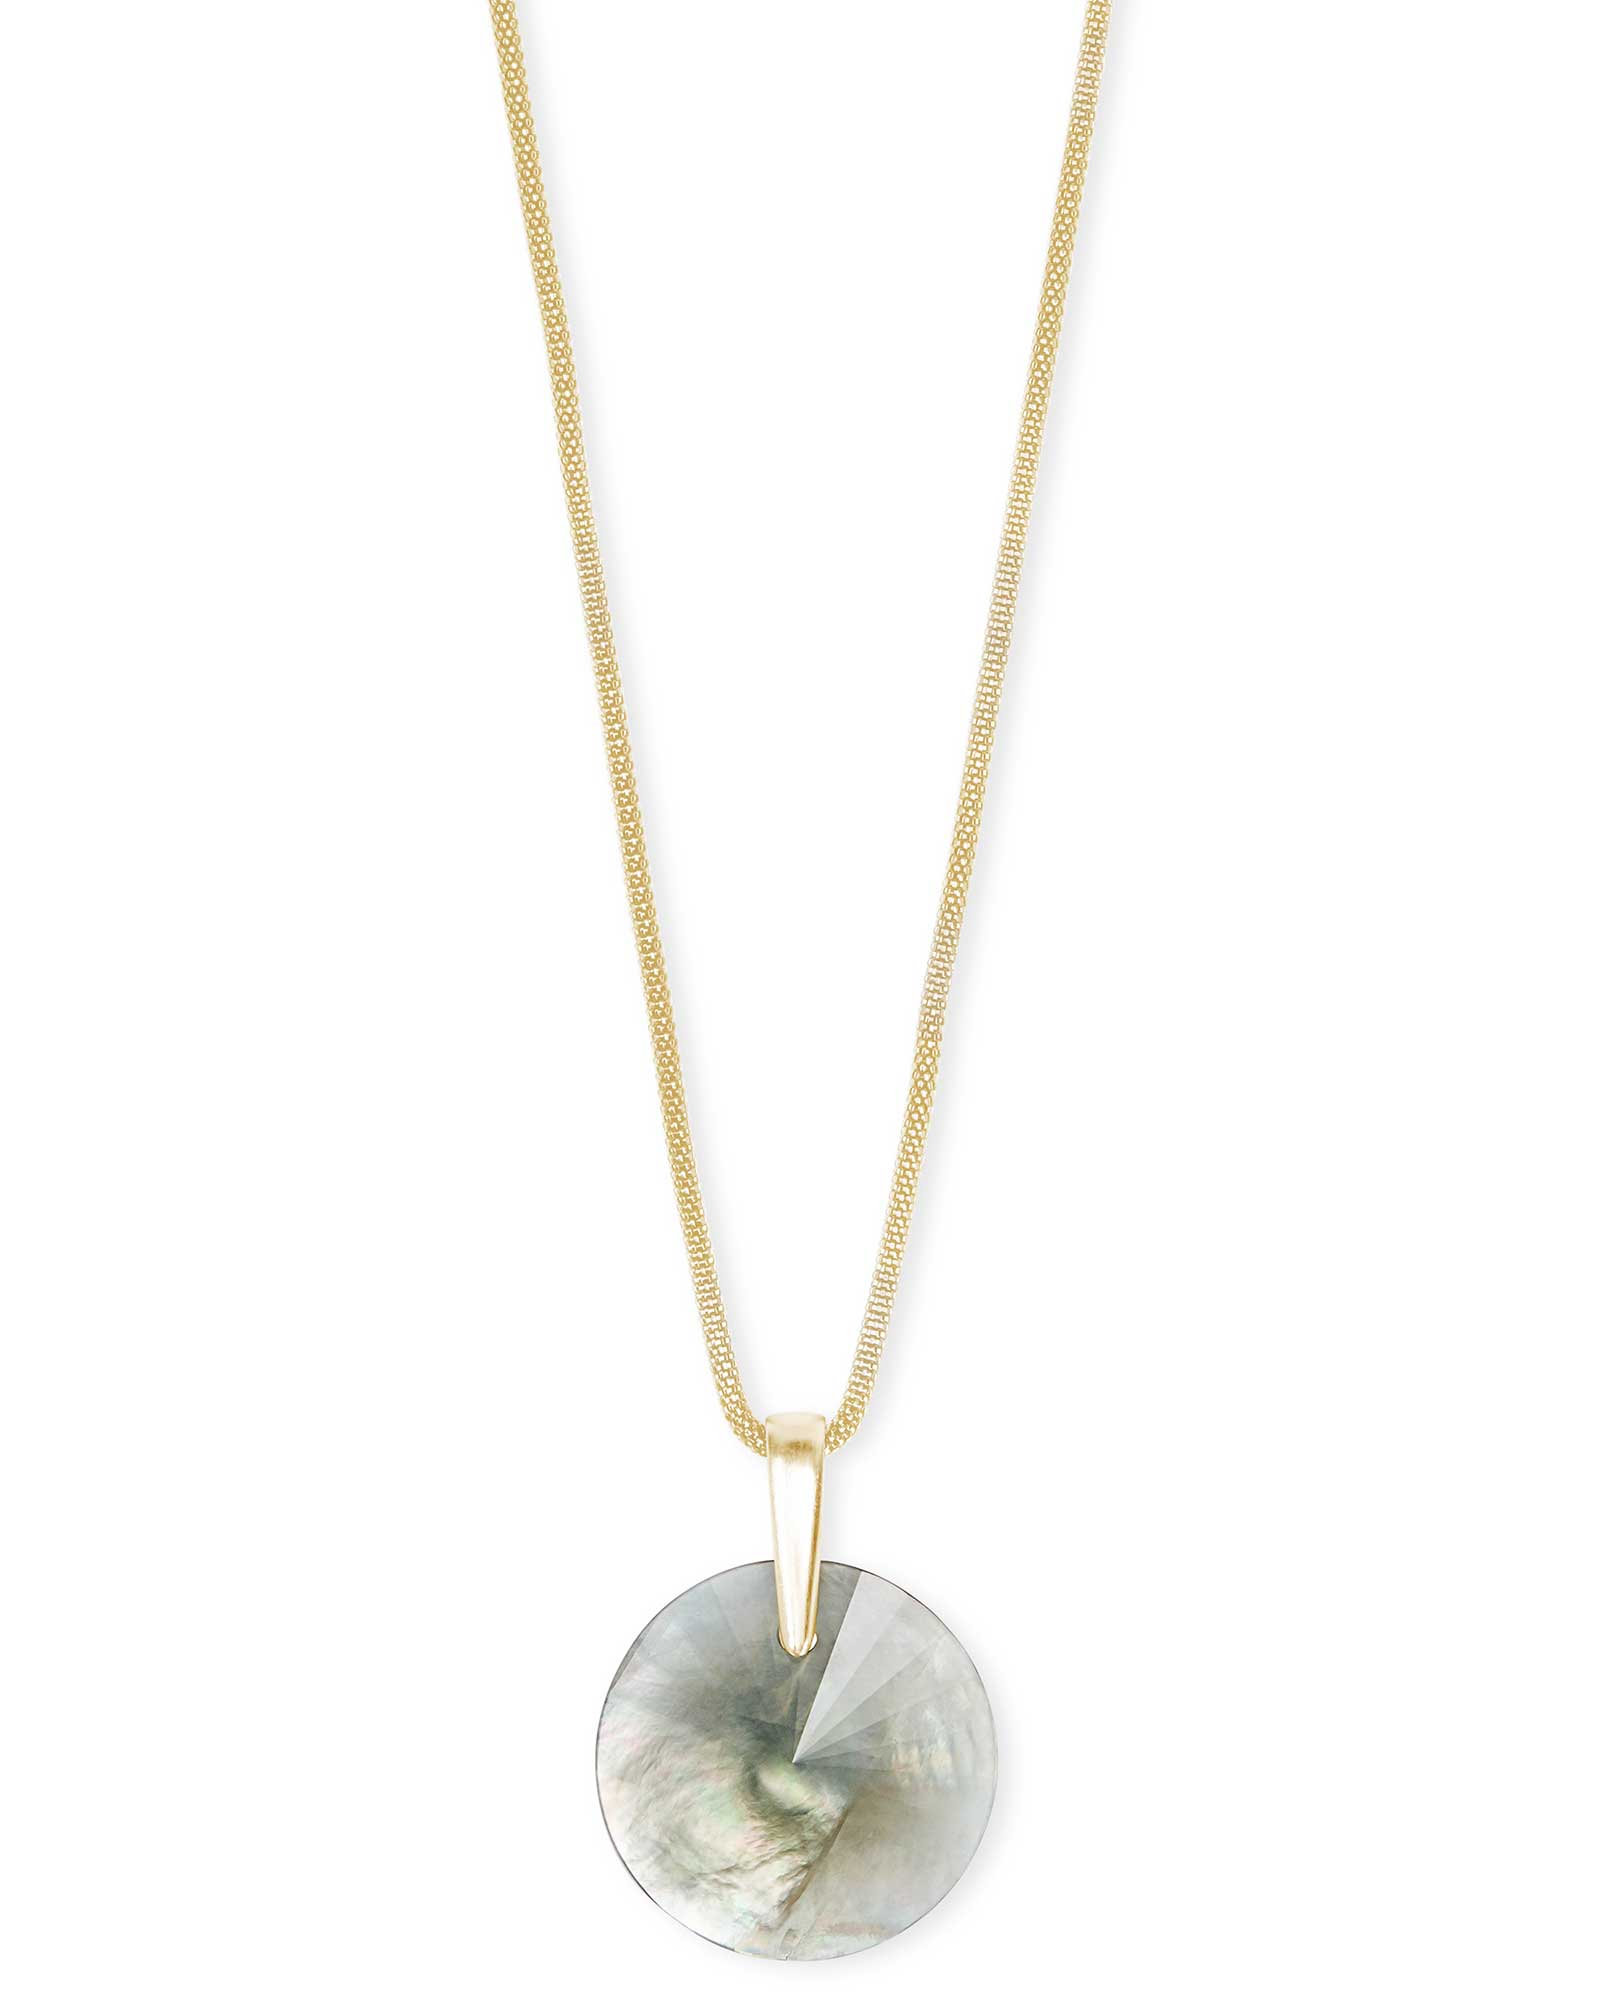 Jolie Gold Long Pendant Necklace in Gray Illusion